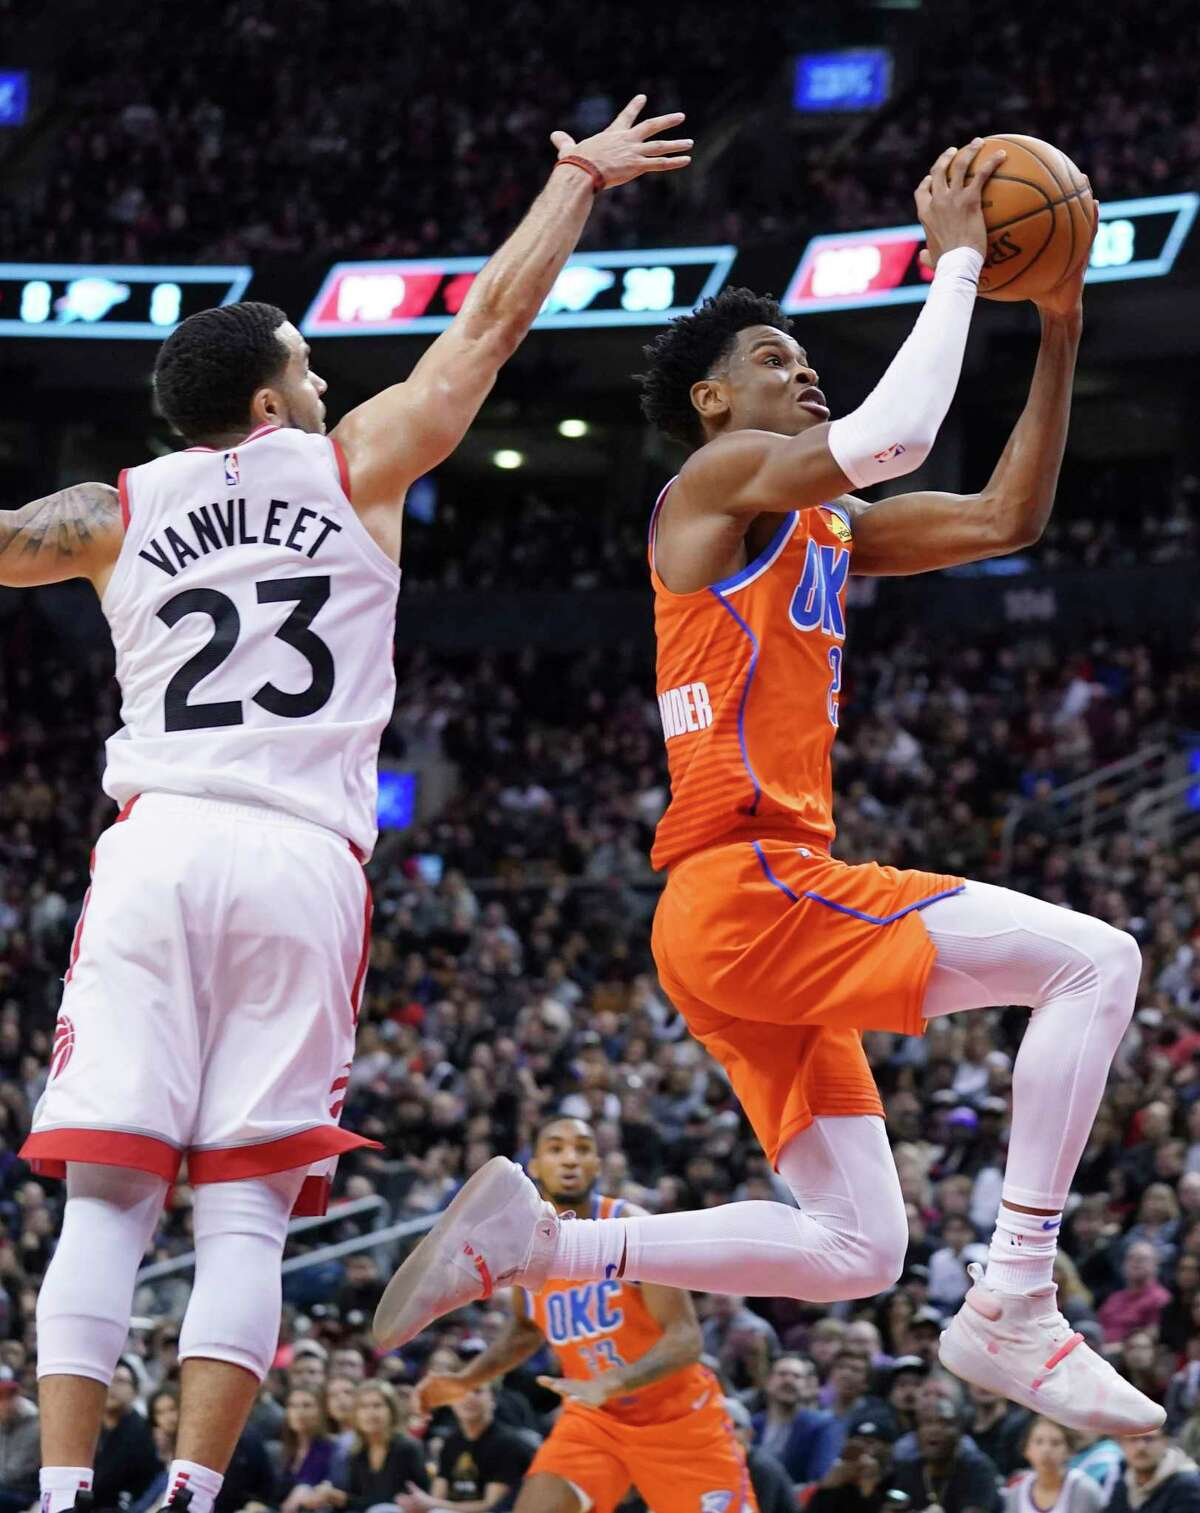 Oklahoma City Thunder Shai Gilgeous-Alexander (2) drives to the basket against the defence of Toronto Raptors Fred VanVleet (23) during fourth quarter NBA basketball action in Toronto on Sunday, Dec. 29, 2019. (Hans Deryk/The Canadian Press via AP)